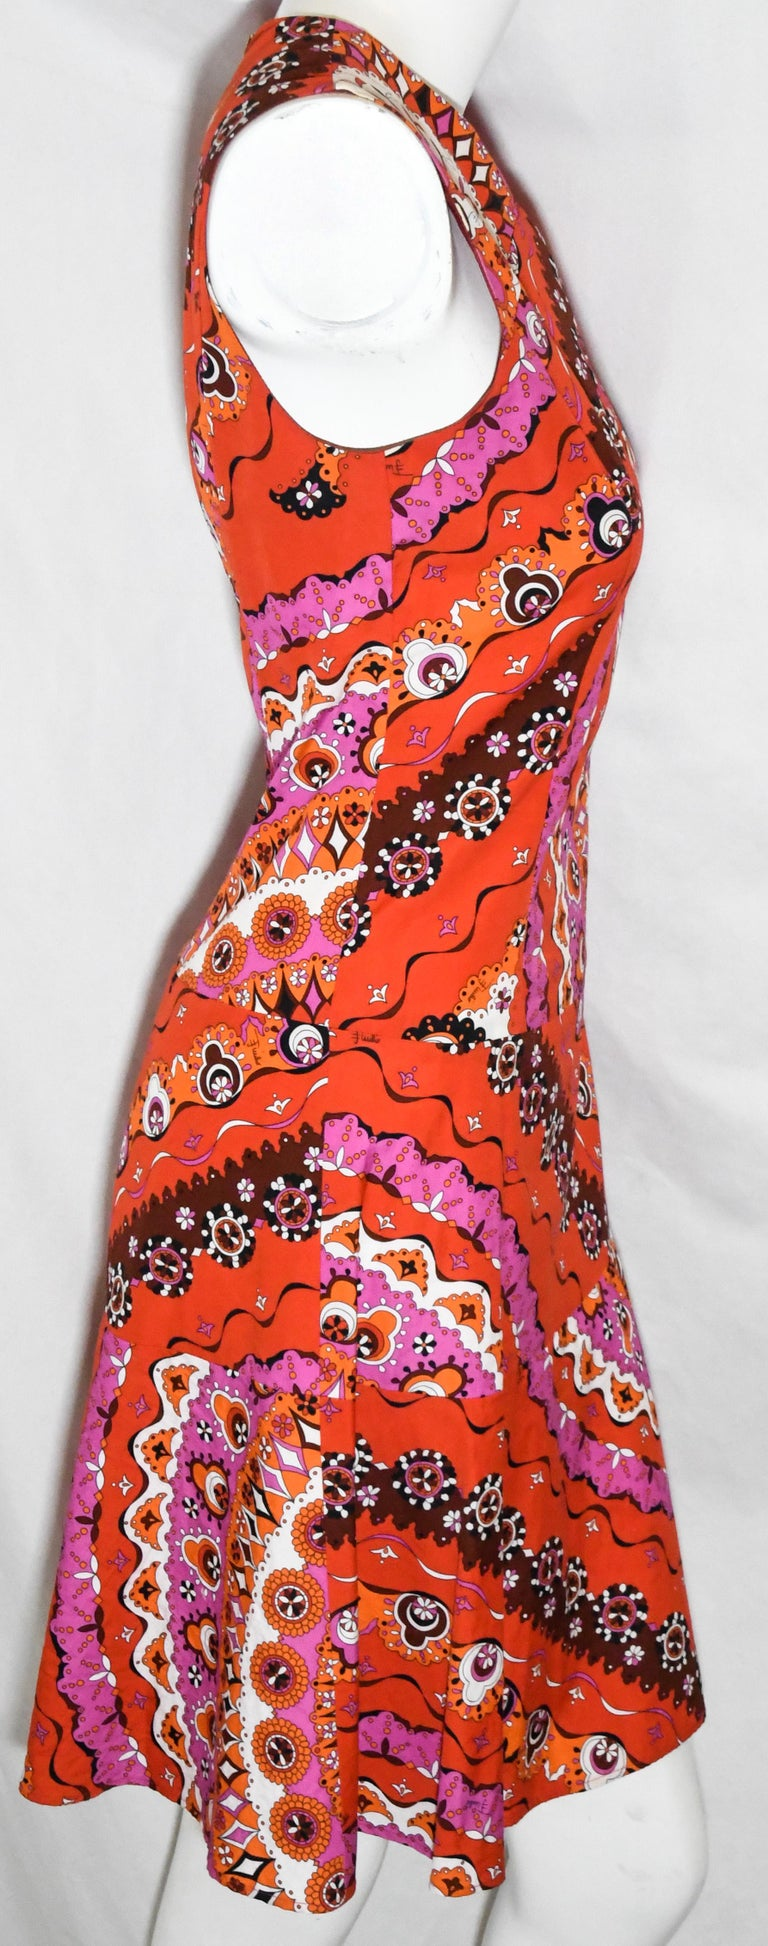 Women's Emilio Pucci Sleeveless Red Print Cotton Dress  For Sale